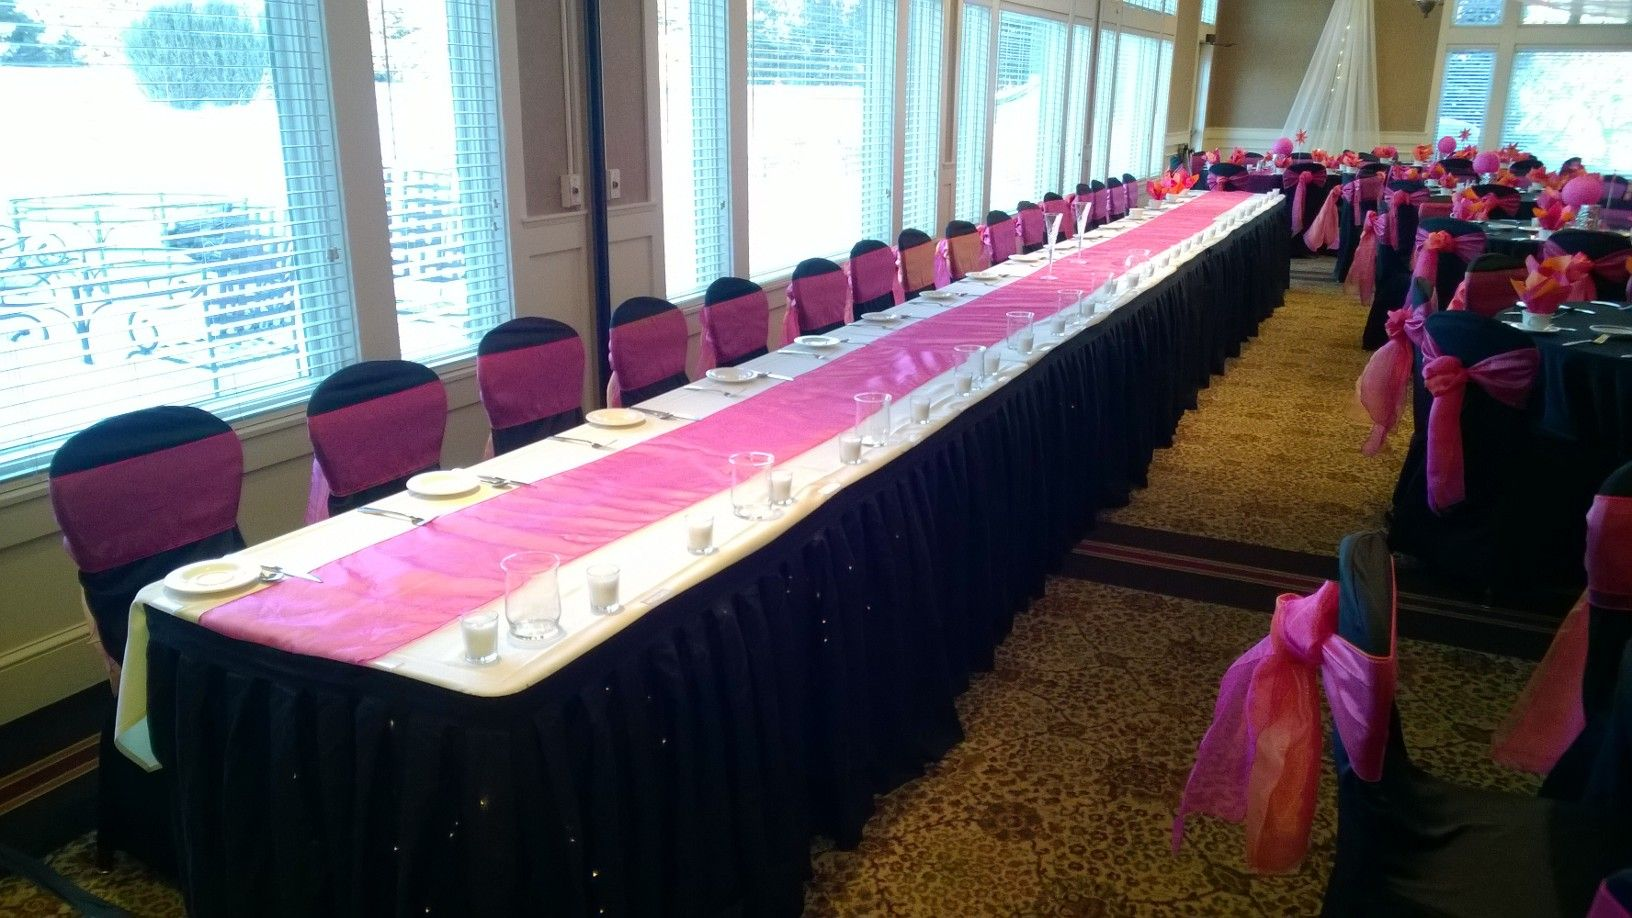 wedding chair covers east midlands how to make slipcovers for folding metal chairs black table linens with hot pink organza runners